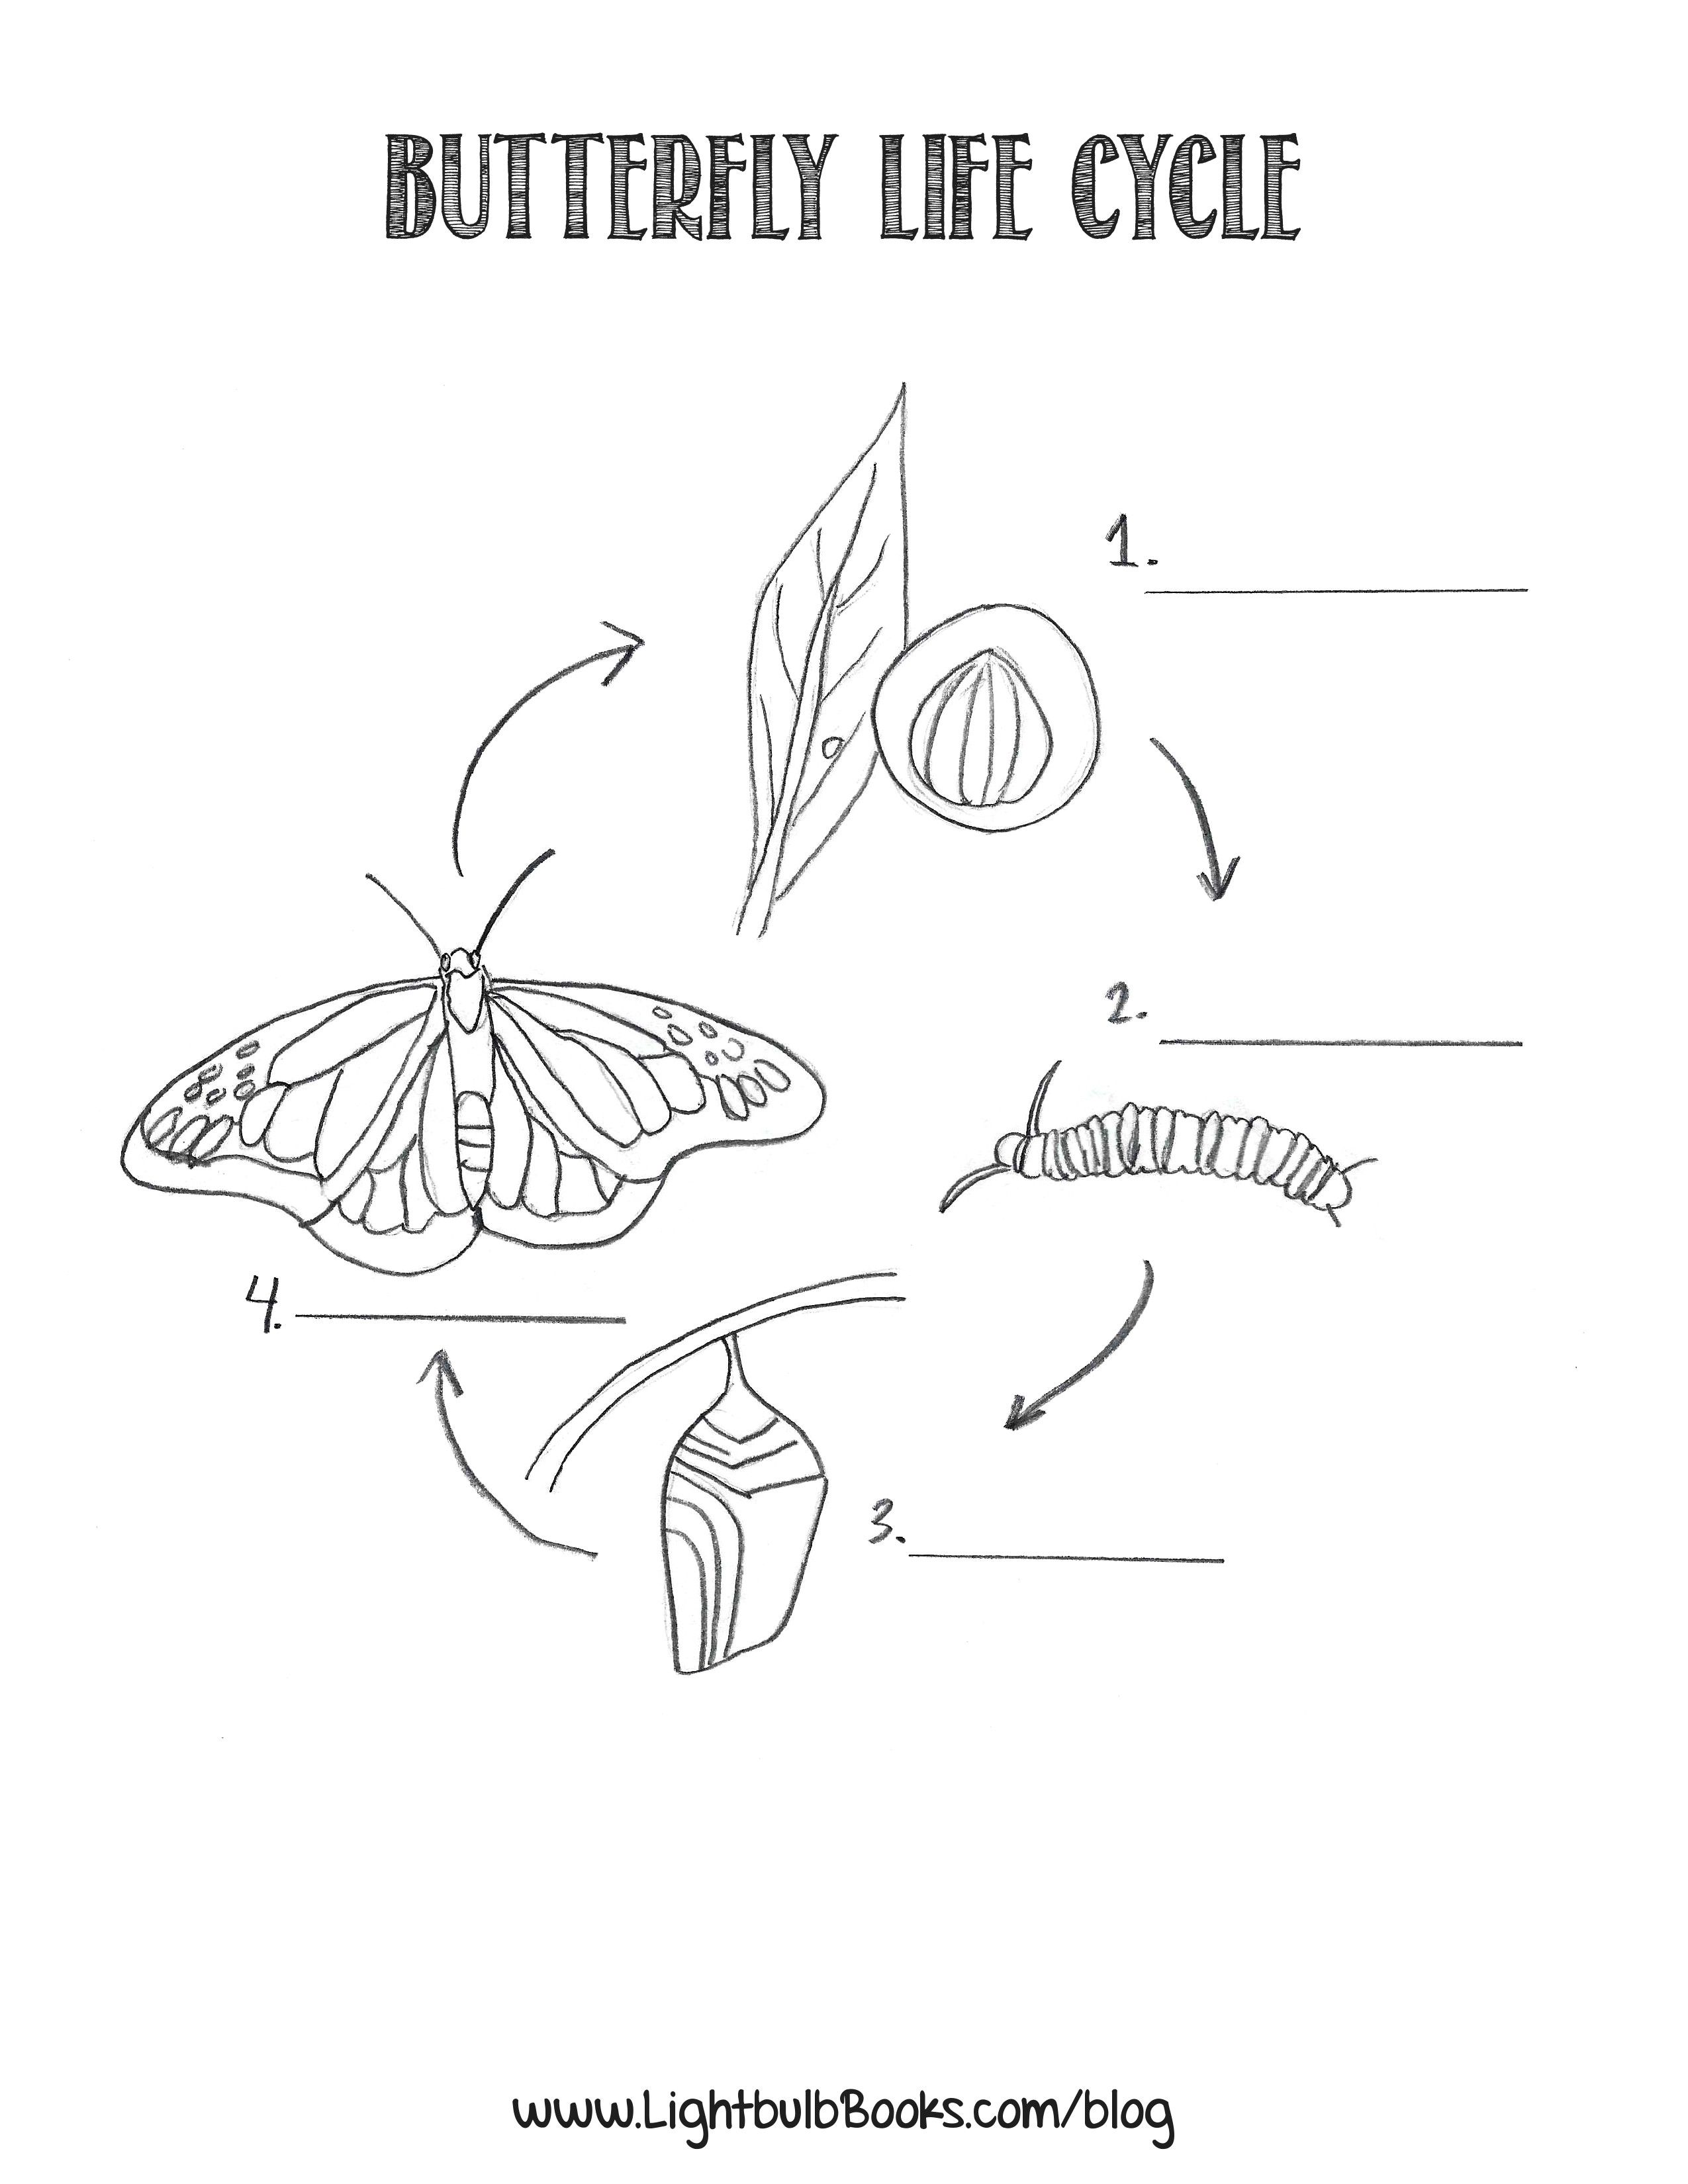 Worksheet : Life Cycle Of Butterfly Photo The Create Webquest For - Life Cycle Of A Frog Free Printable Book